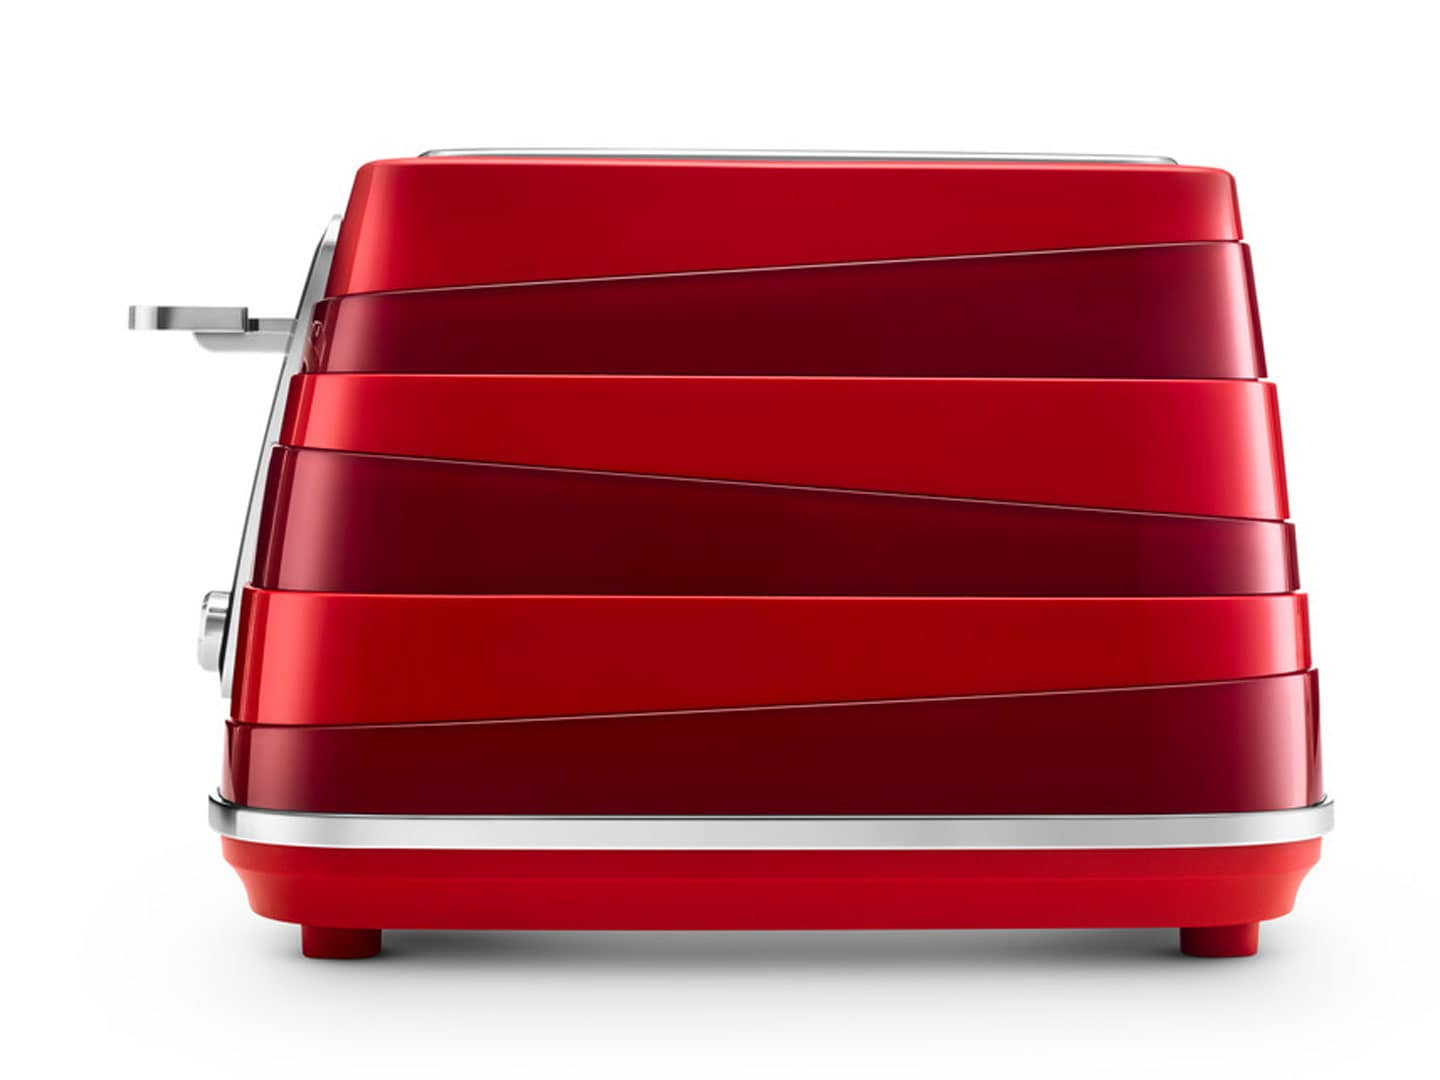 DeLonghi Avvolta 2 Slice Toaster Red CTA2003R